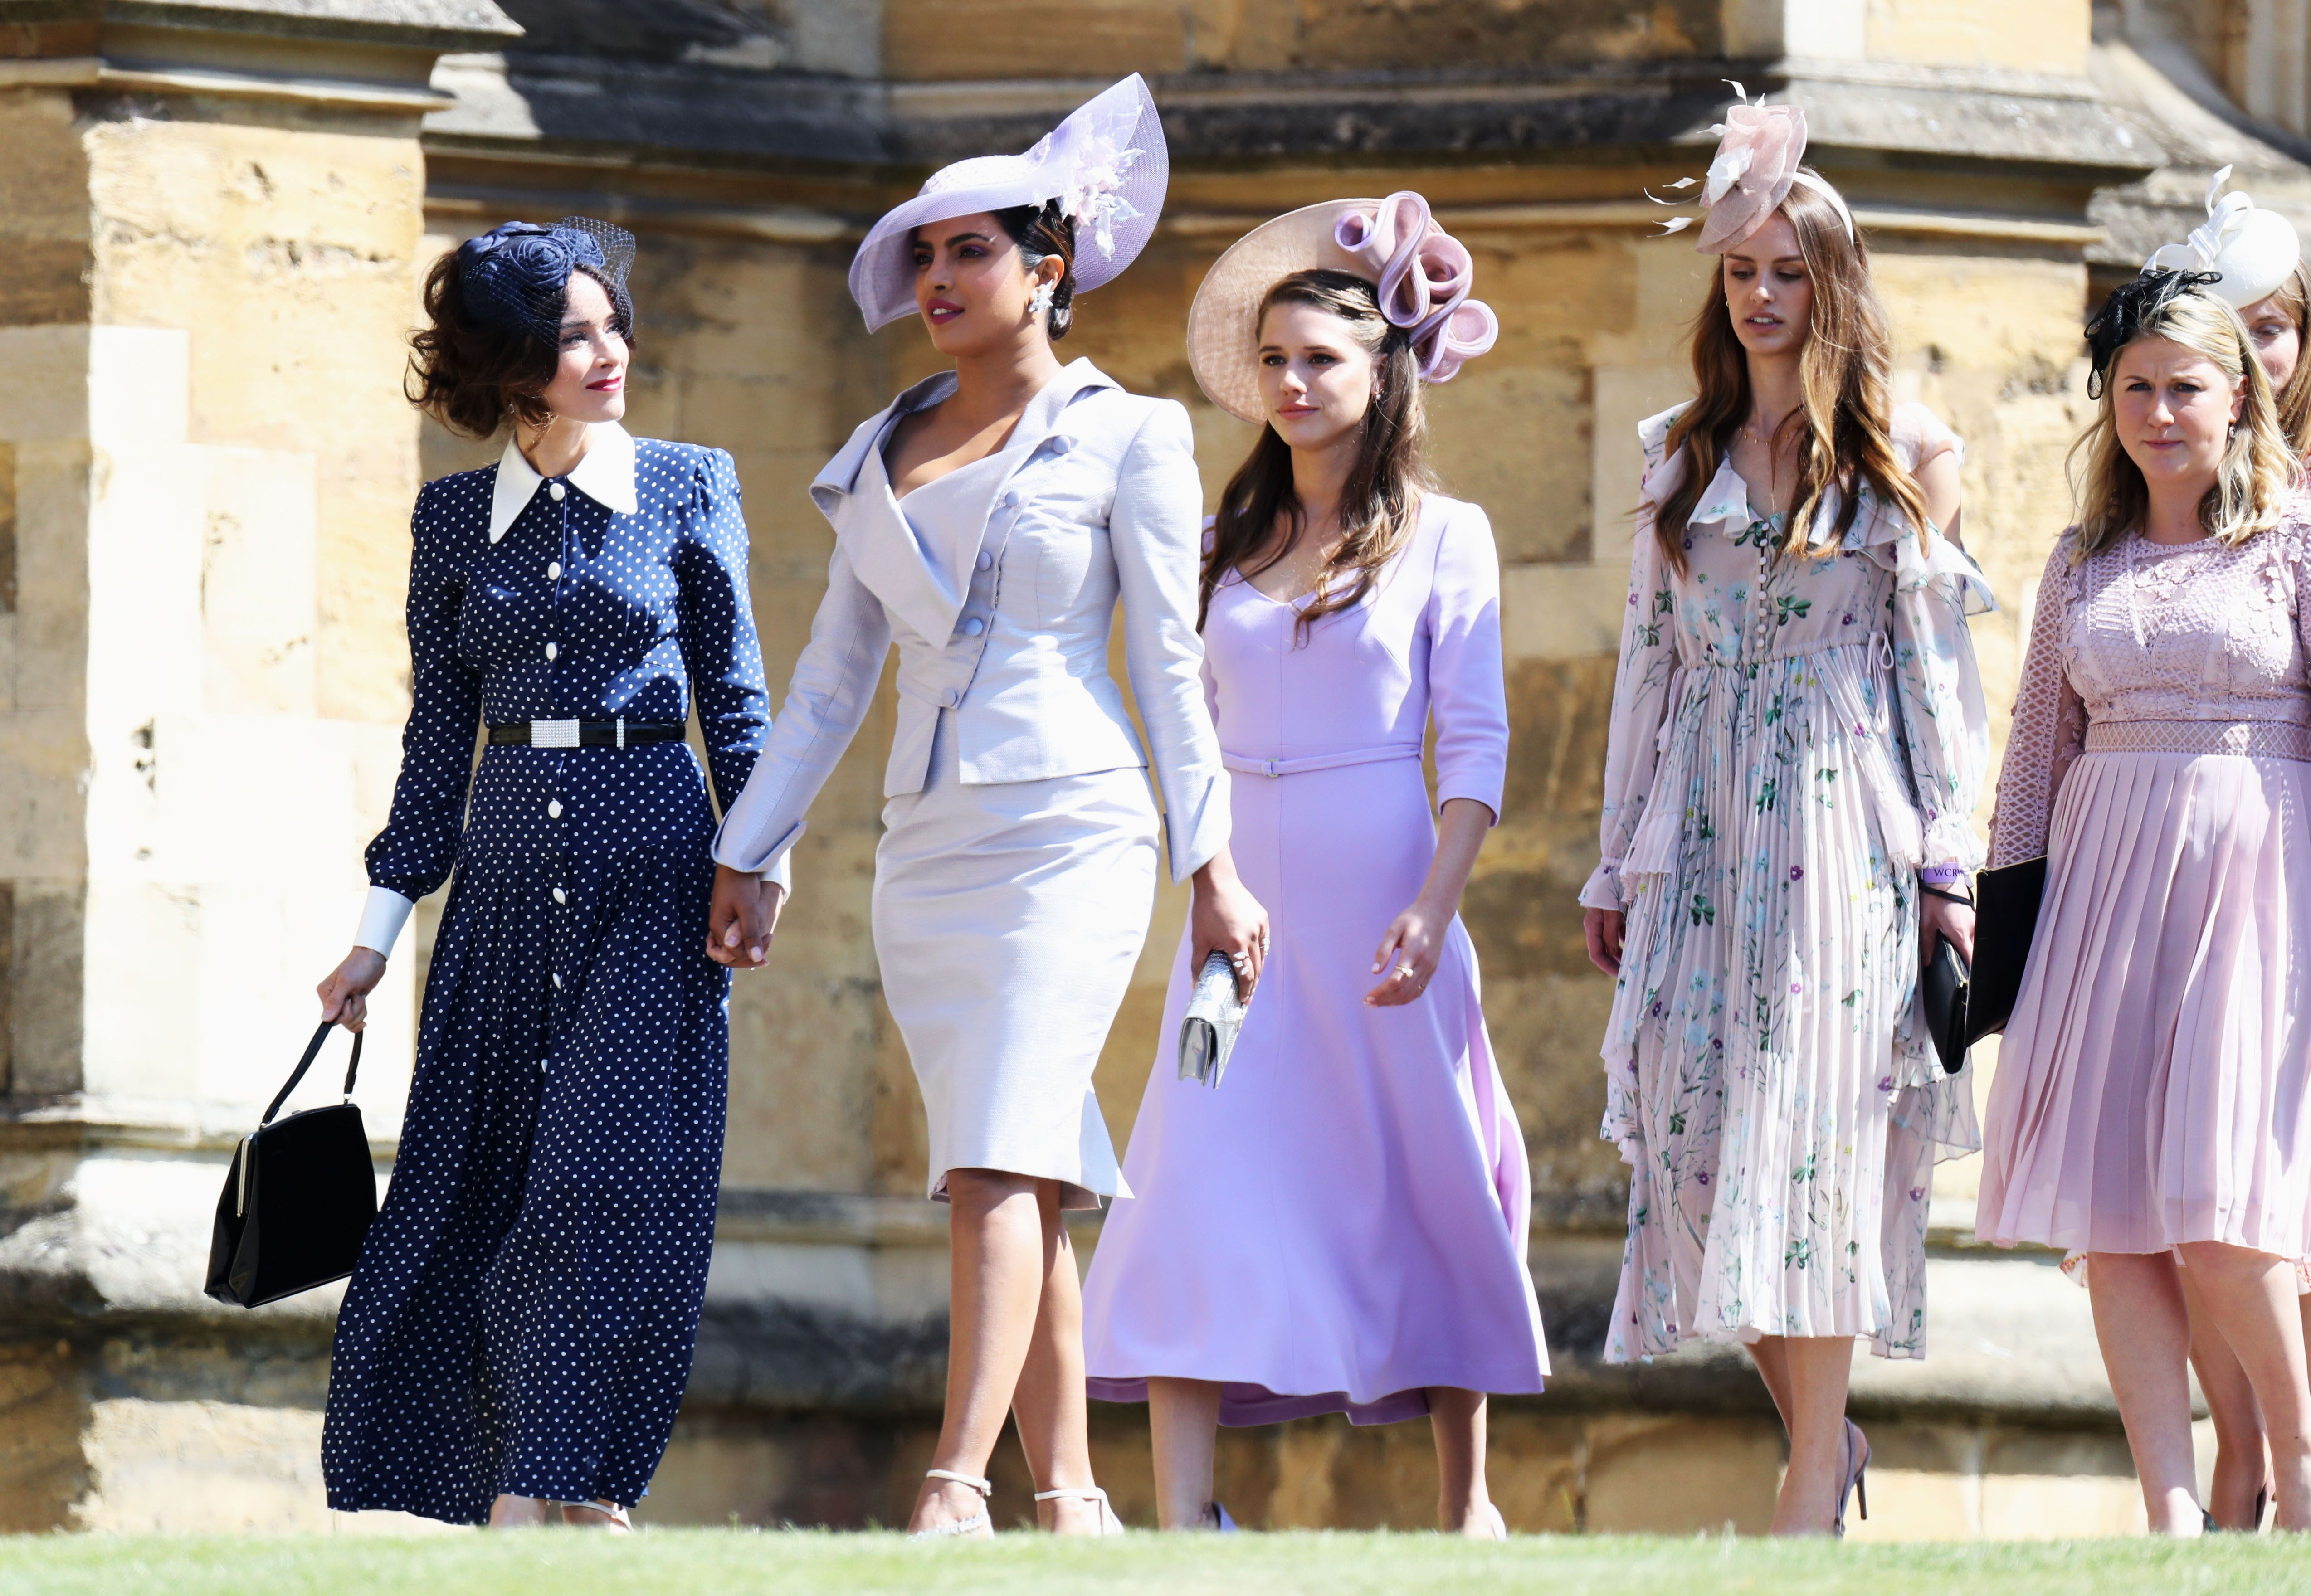 Guests At Royal Wedding.Royal Wedding 2018 Celebrity Guest List Famous Guests At The Royal